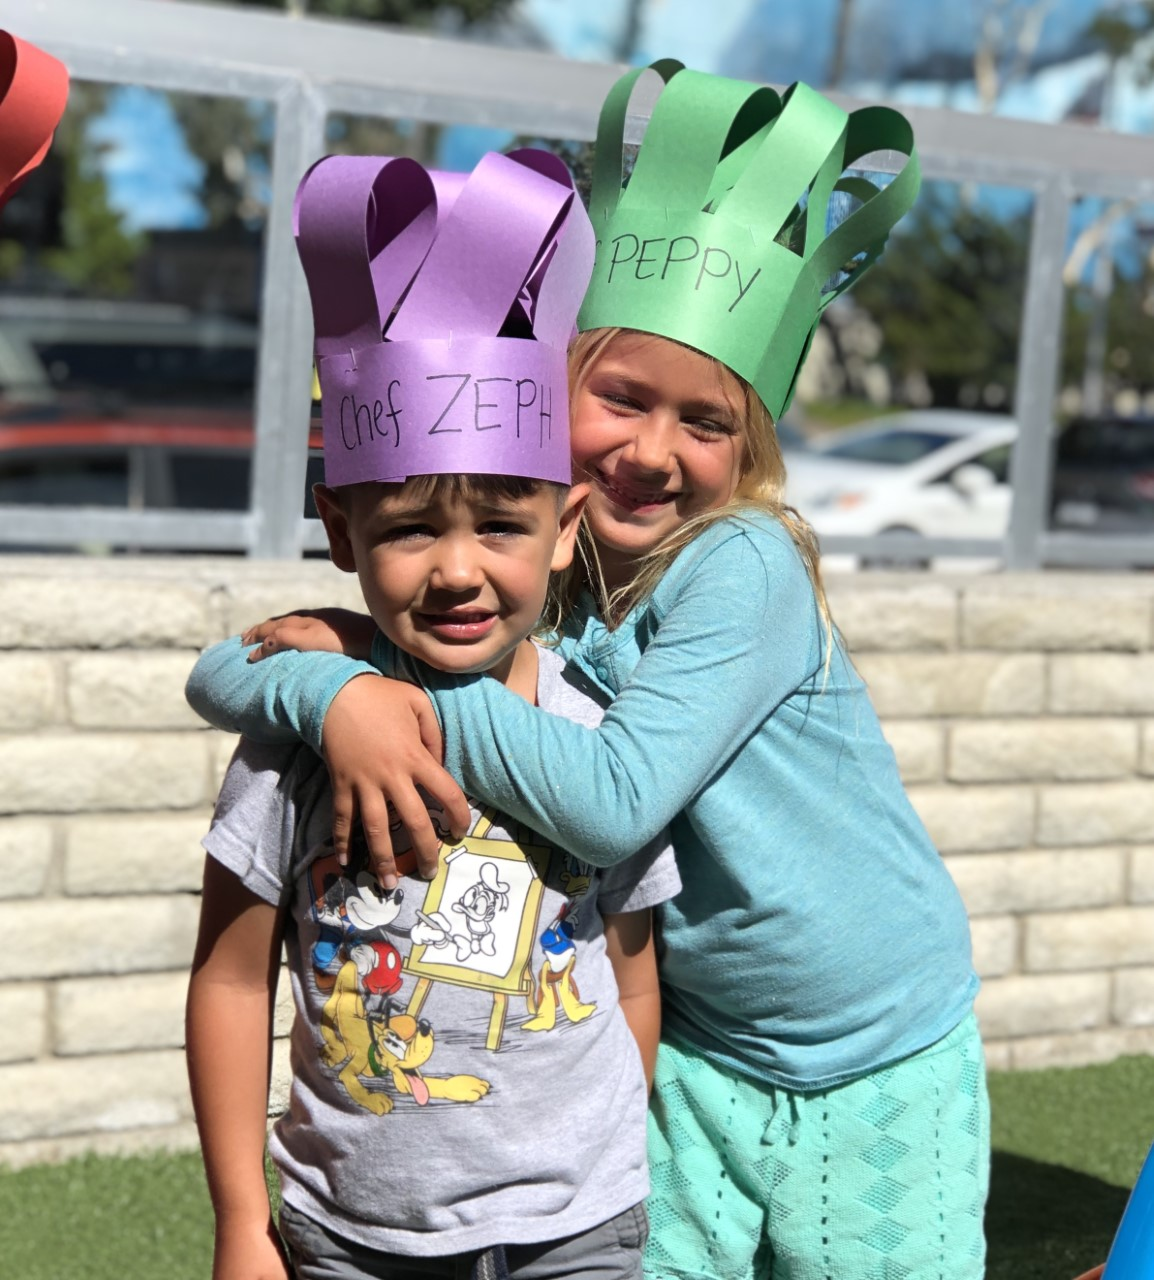 Family Fun: DIY Chef Hats and New Games